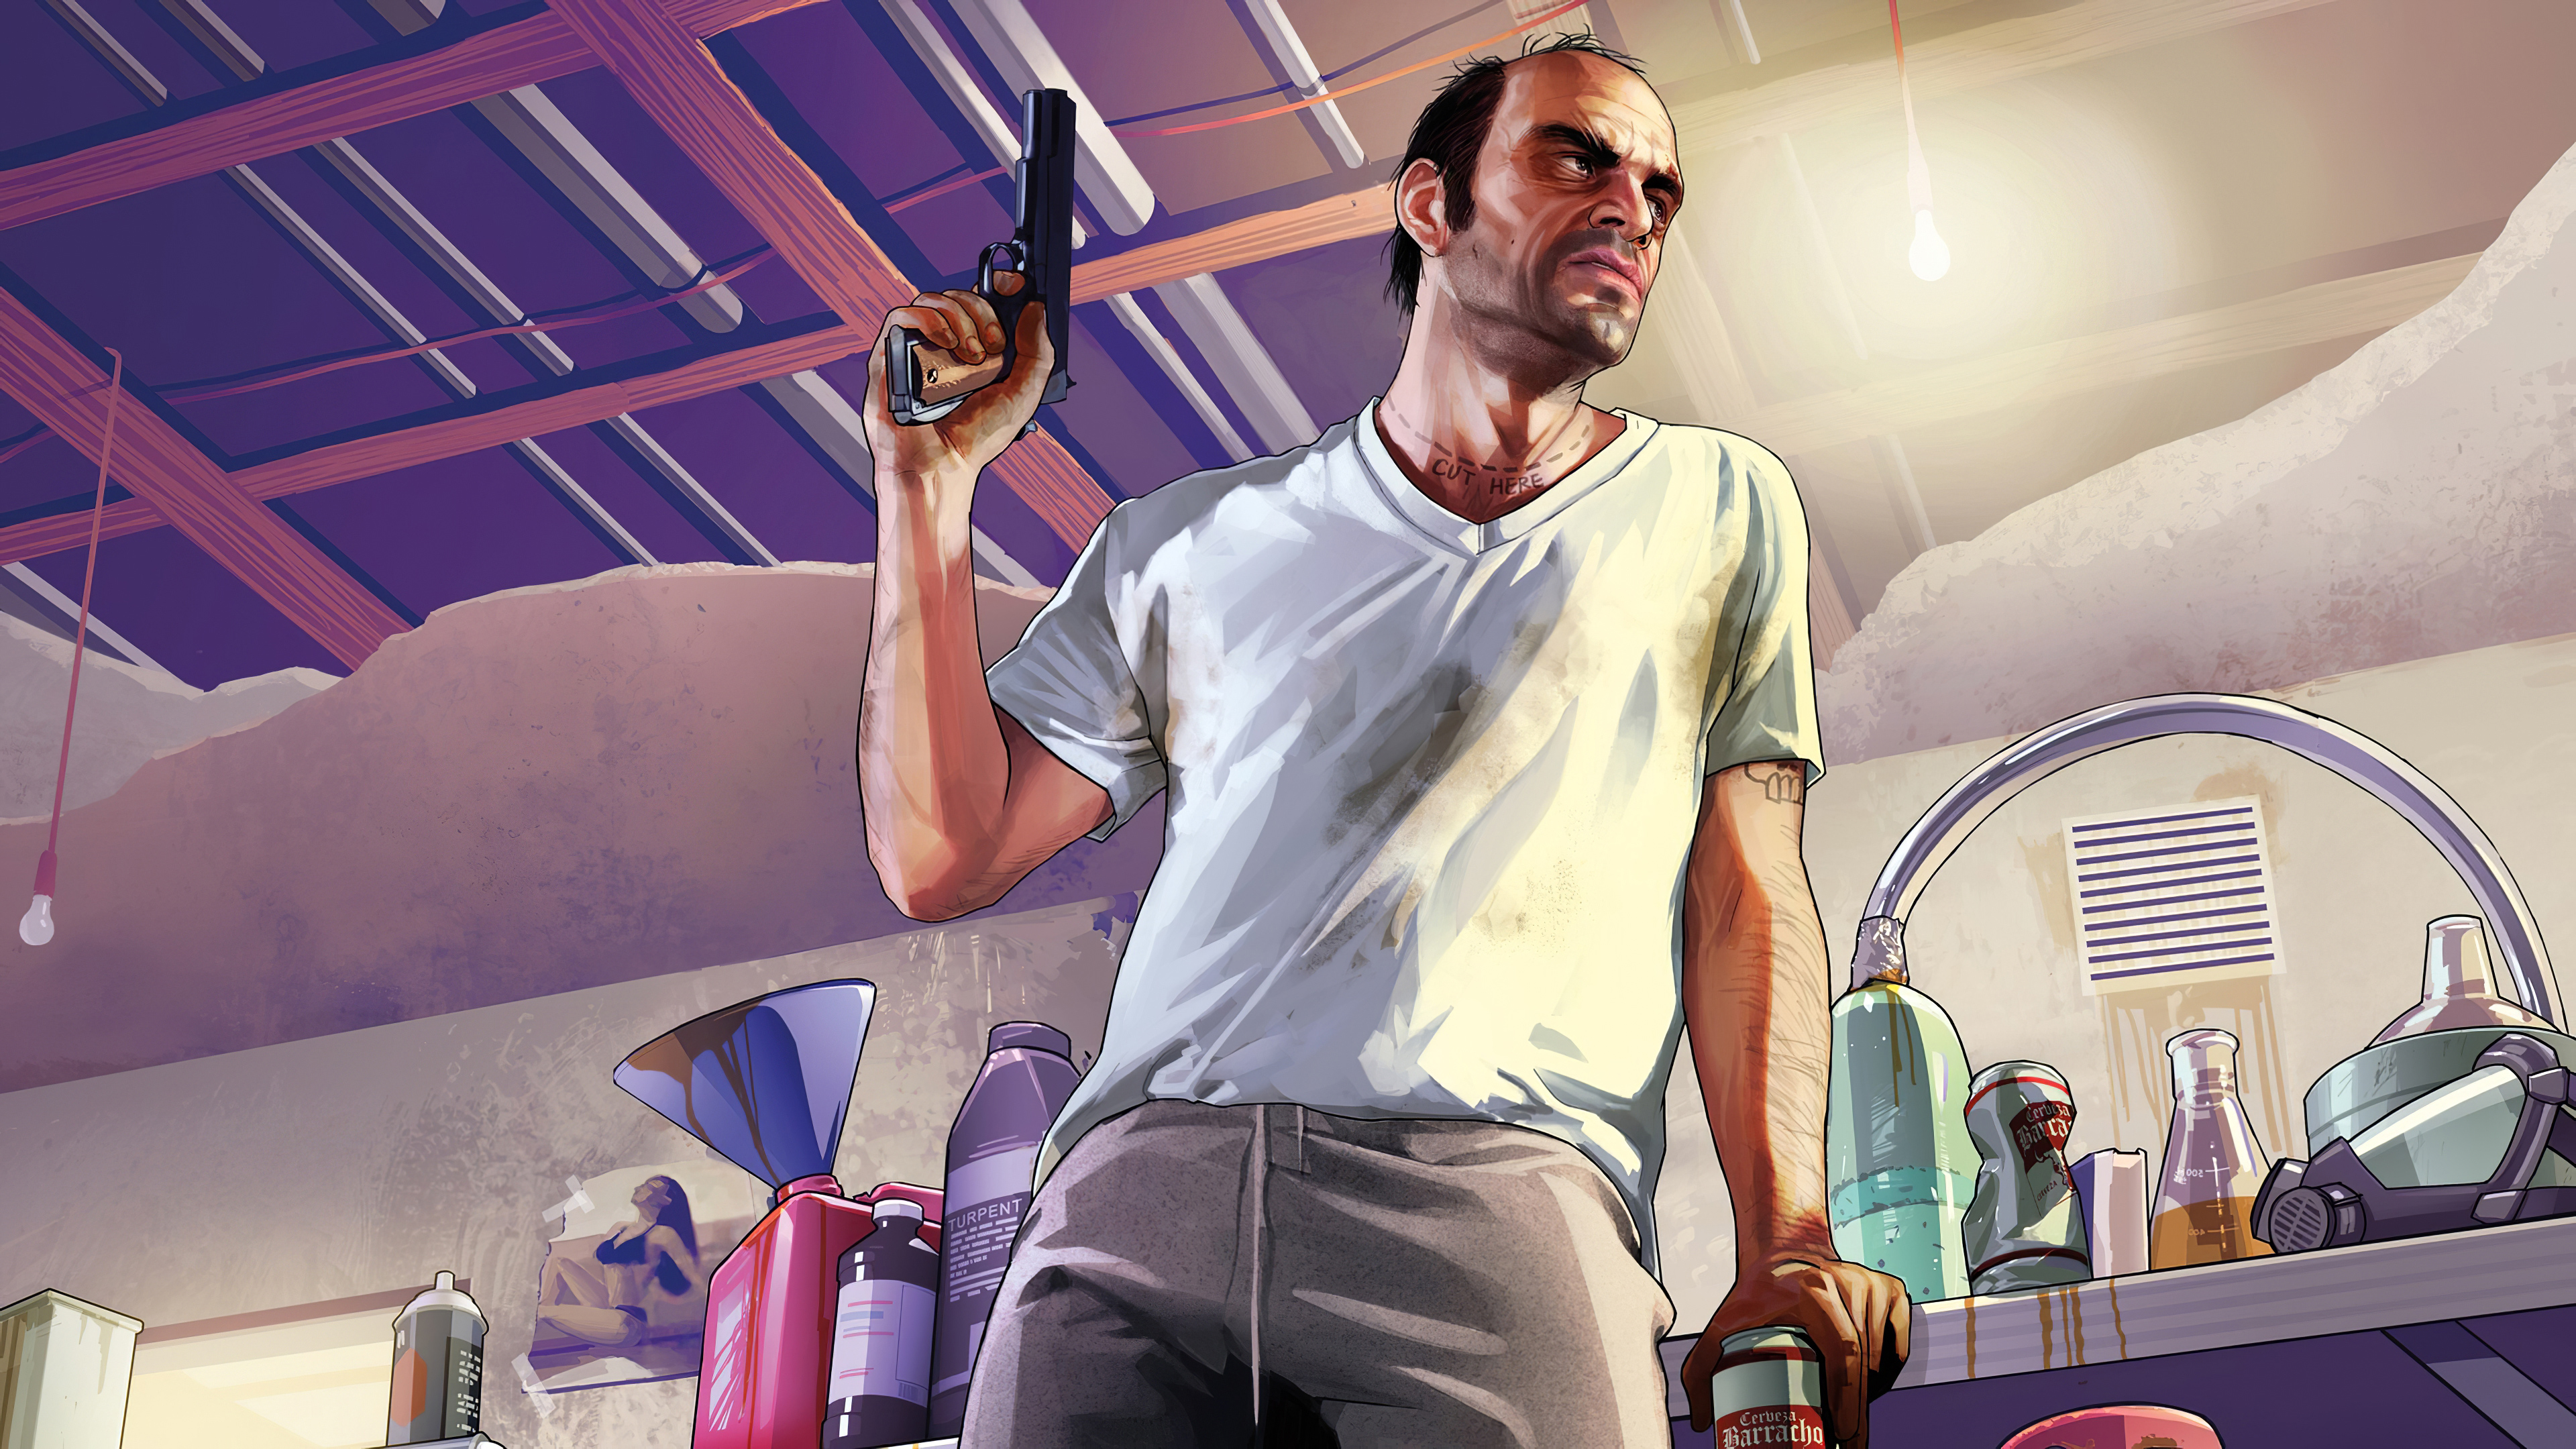 gta 5 trevor 1578854714 - Gta 5 Trevor - gta 5 wallpapers, Gta 5 Trevor wallpaper, Gta 5 Trevor 4k wallpaper, Gta 5 game wallpapers 4k